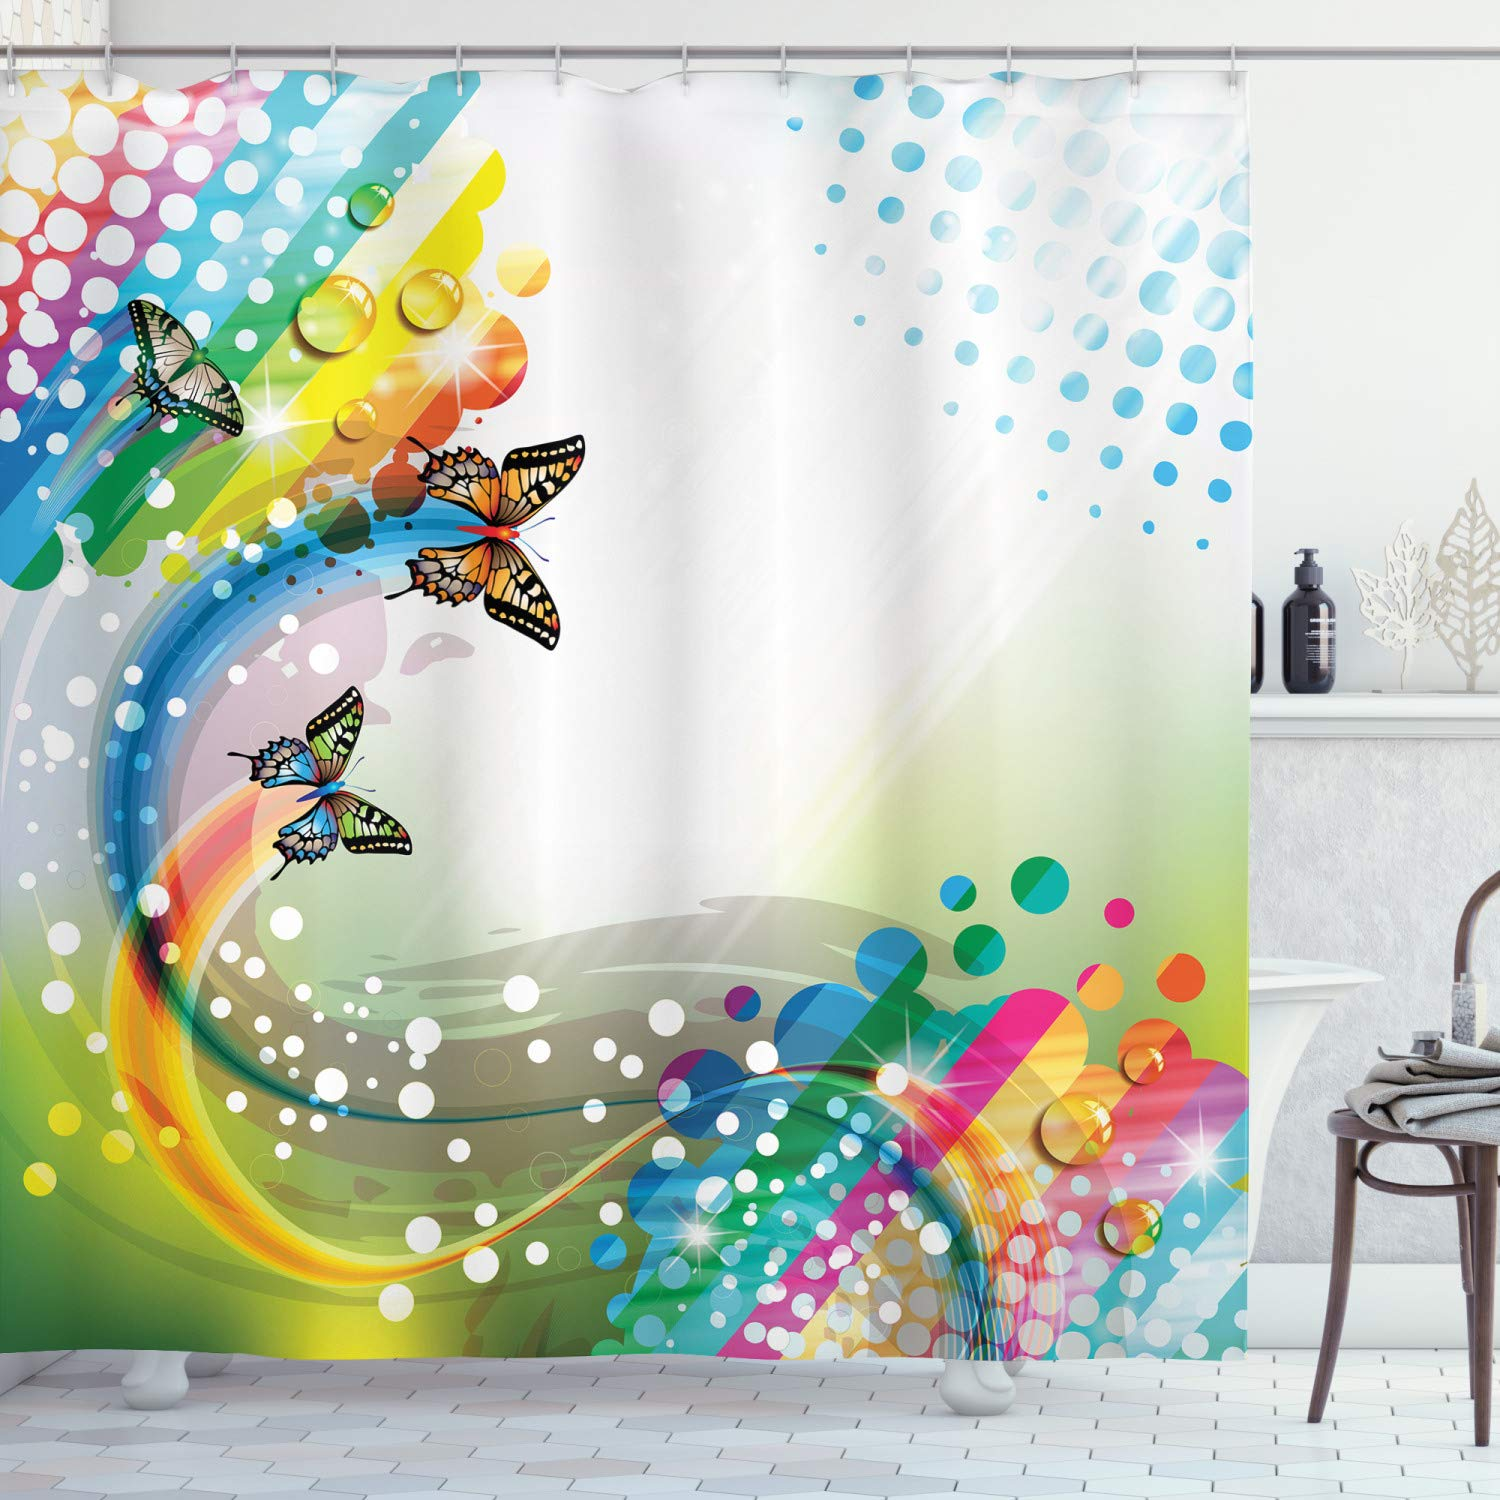 """Ambesonne Colorful Shower Curtain, Trippy Flying Butterflies with Colored Comet Bubbles Creative Design, Cloth Fabric Bathroom Decor Set with Hooks, 75"""" Long, White Green"""